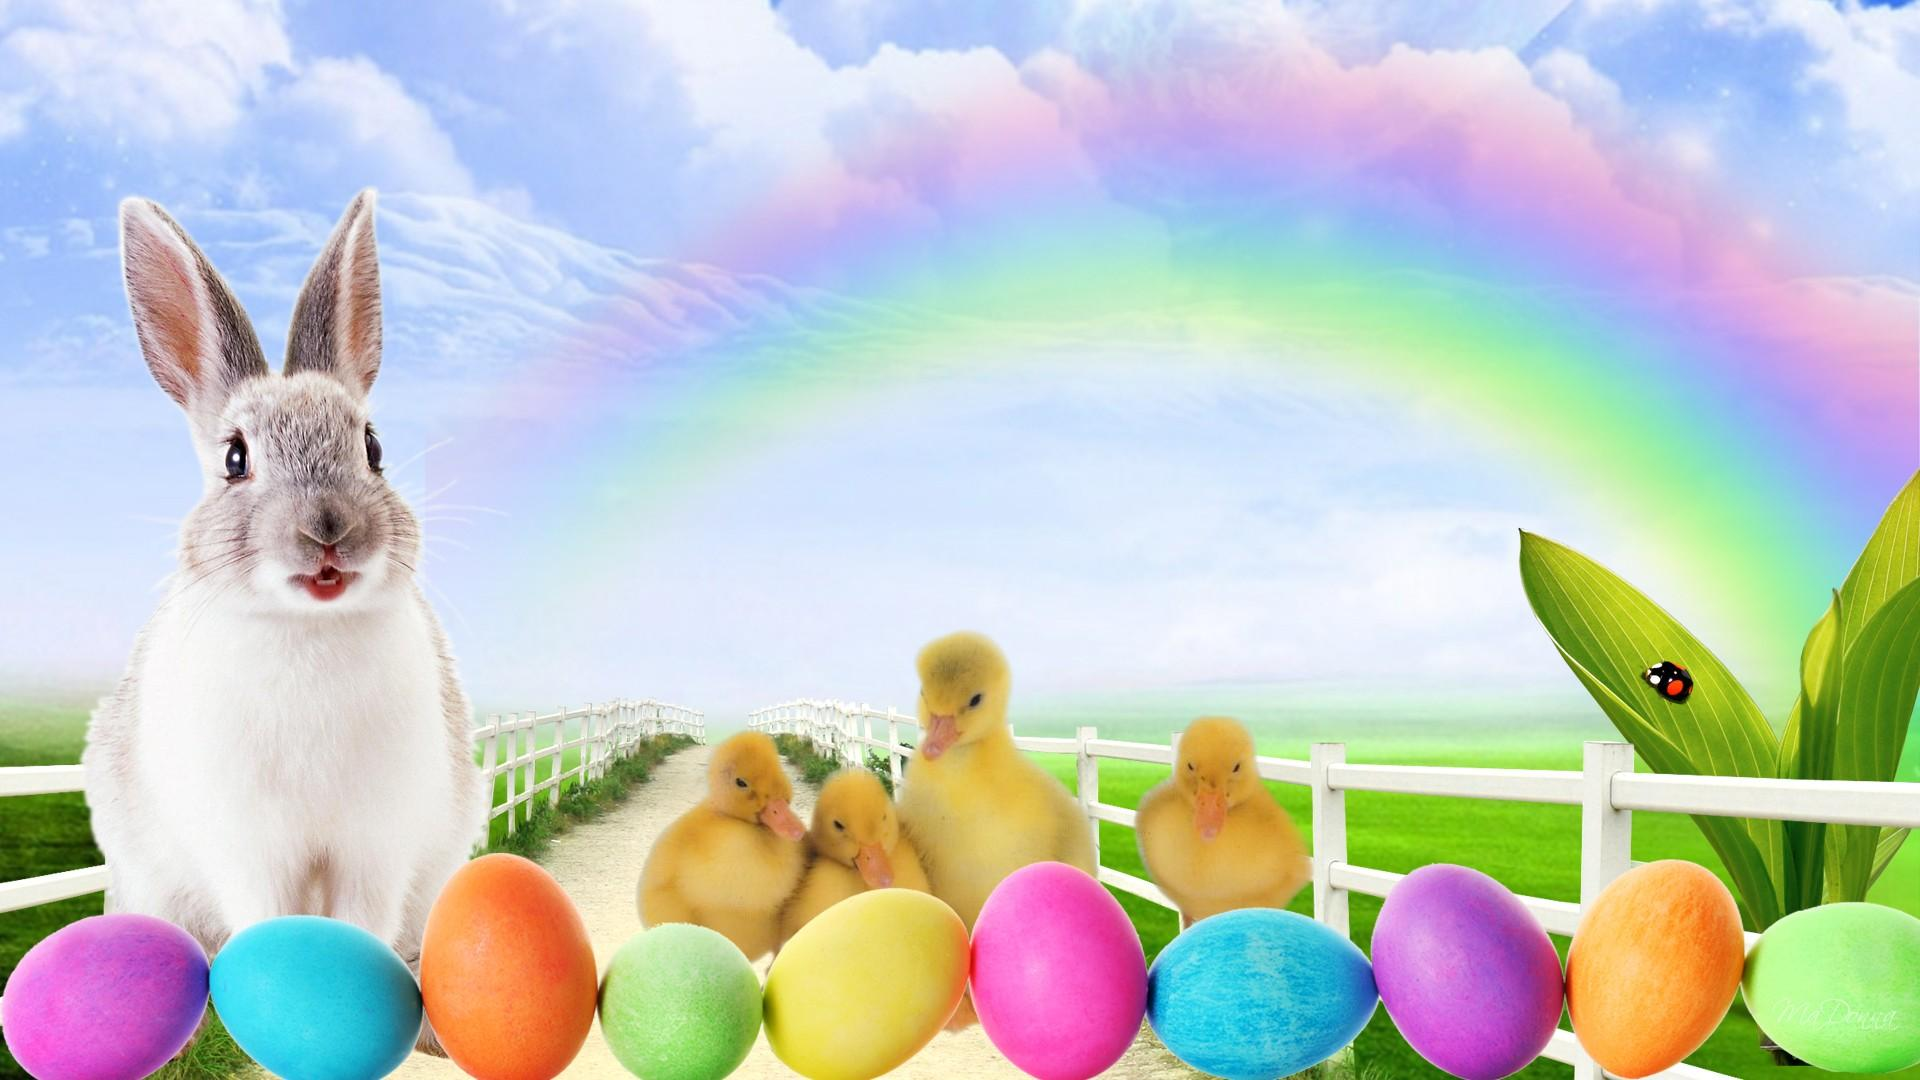 Easter Bunny Wallpaper Free